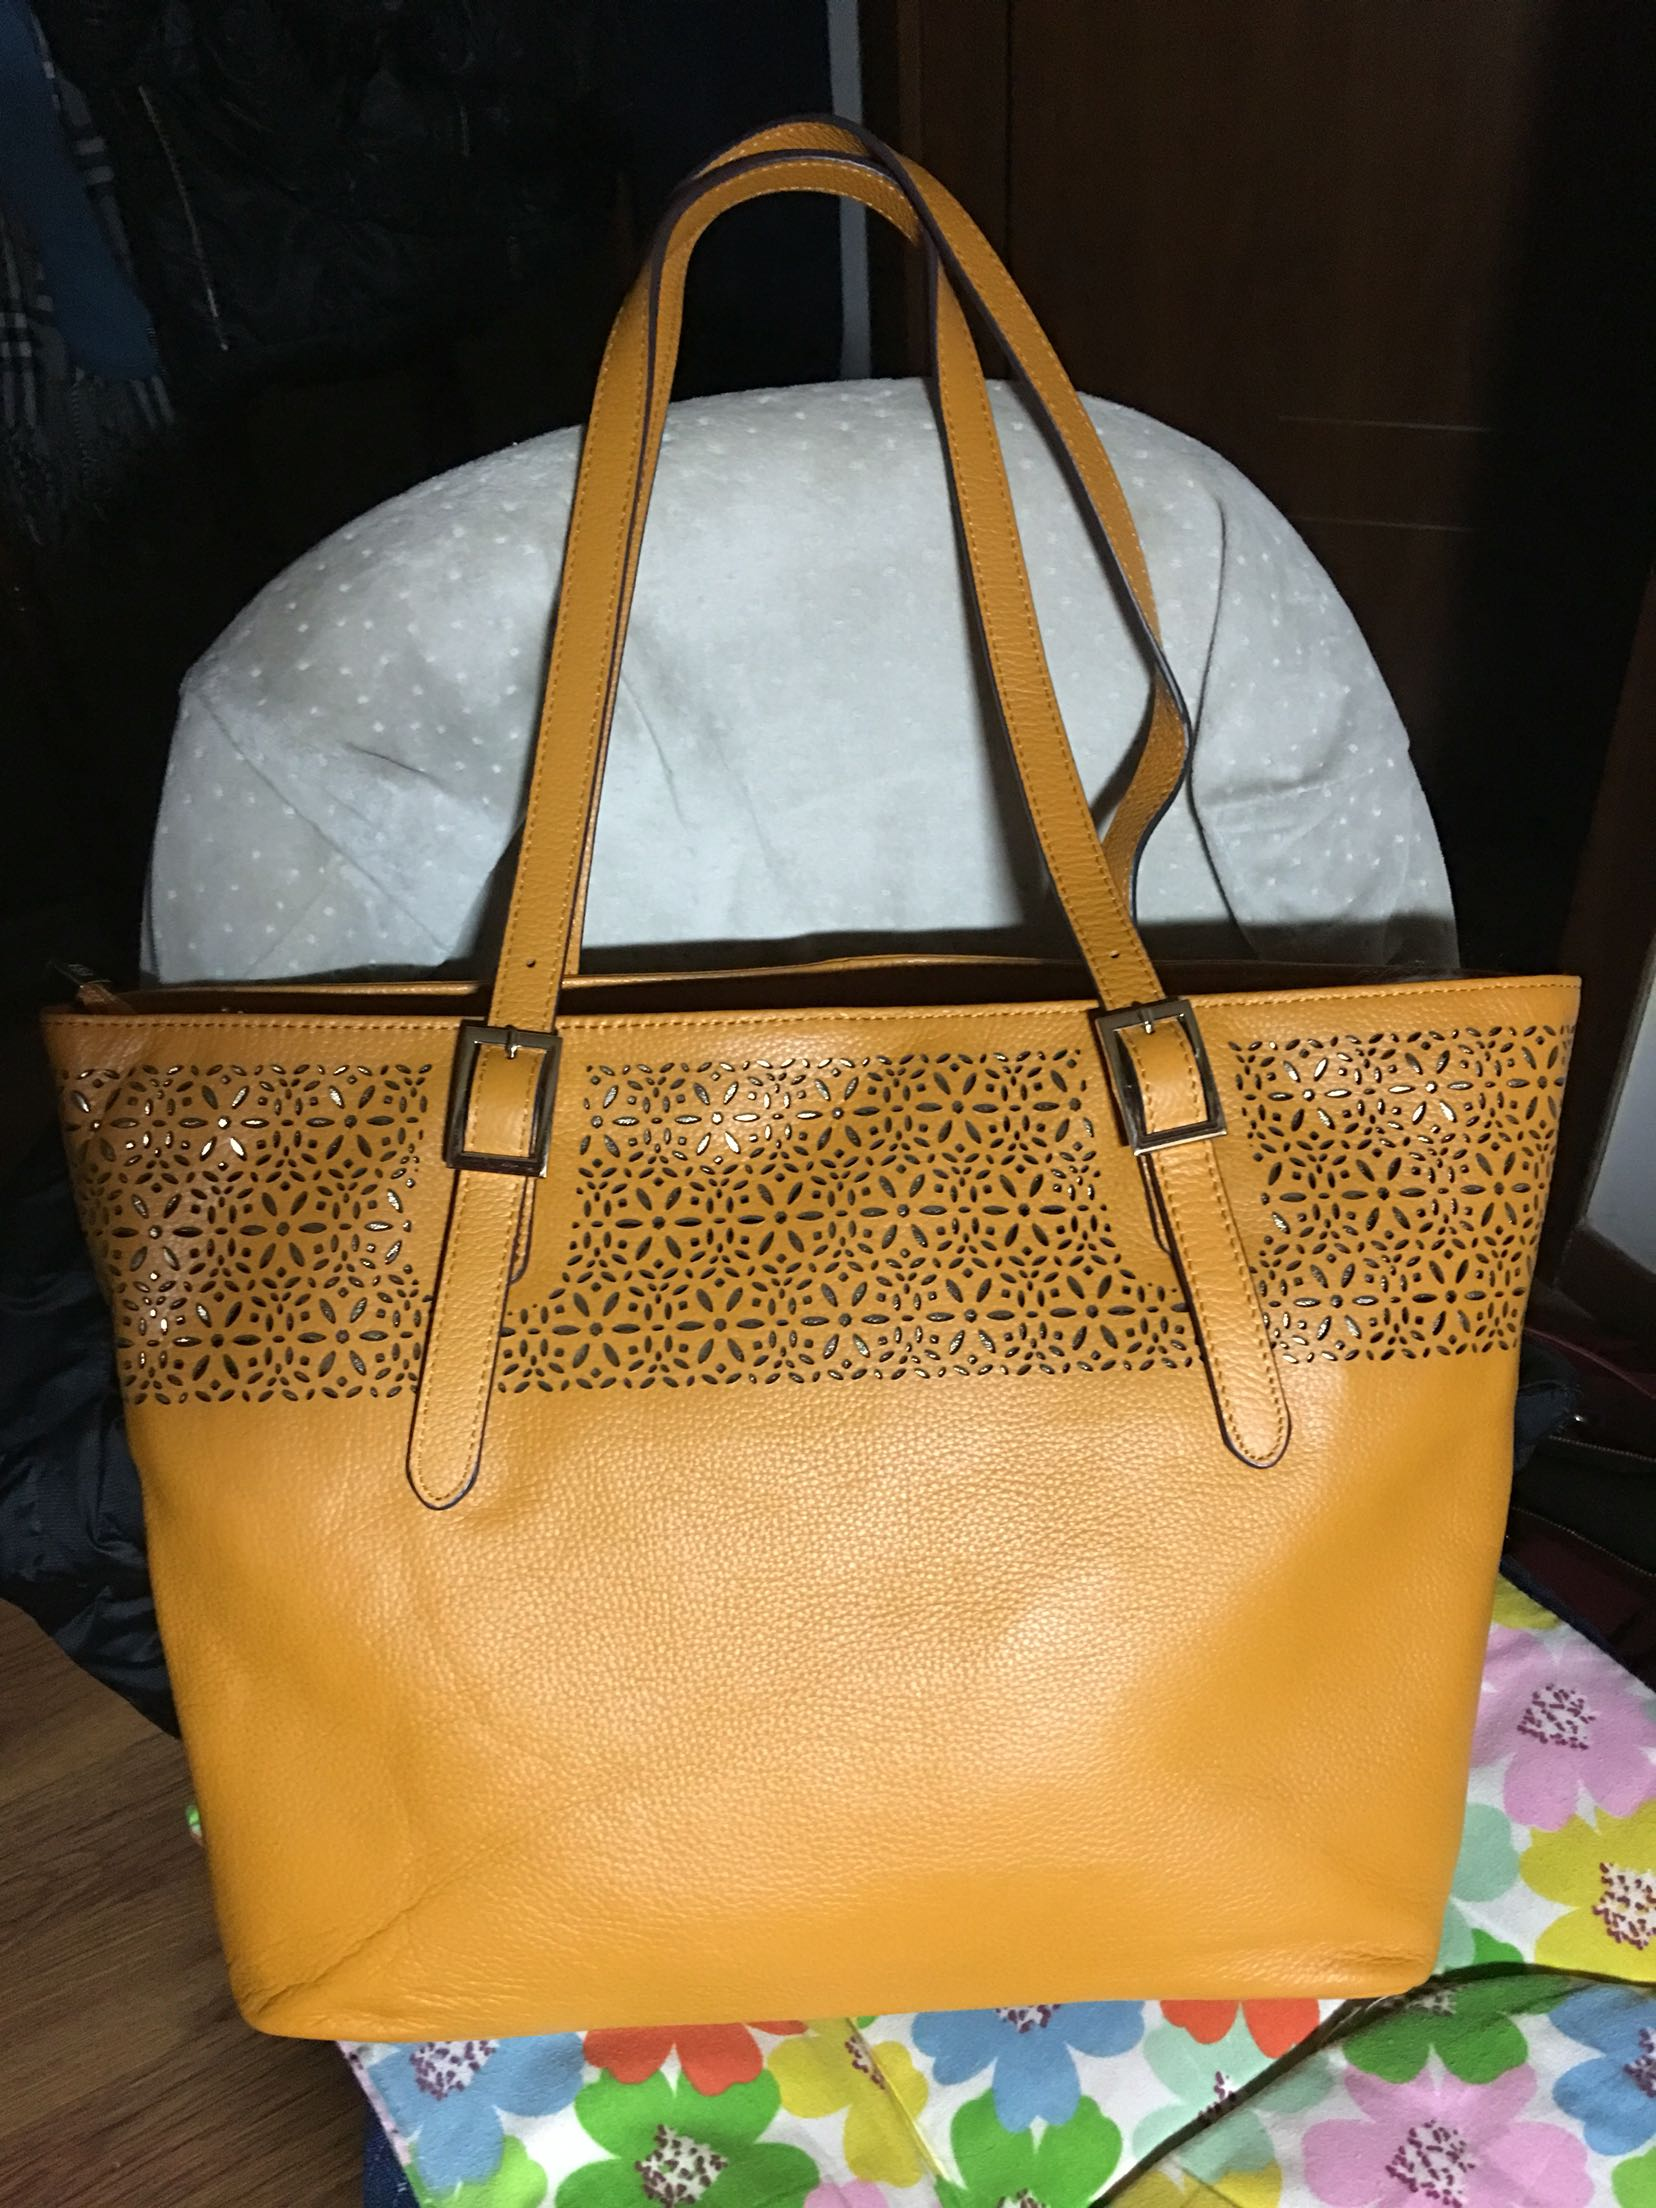 bags direct reviews 002104702 onlineshop